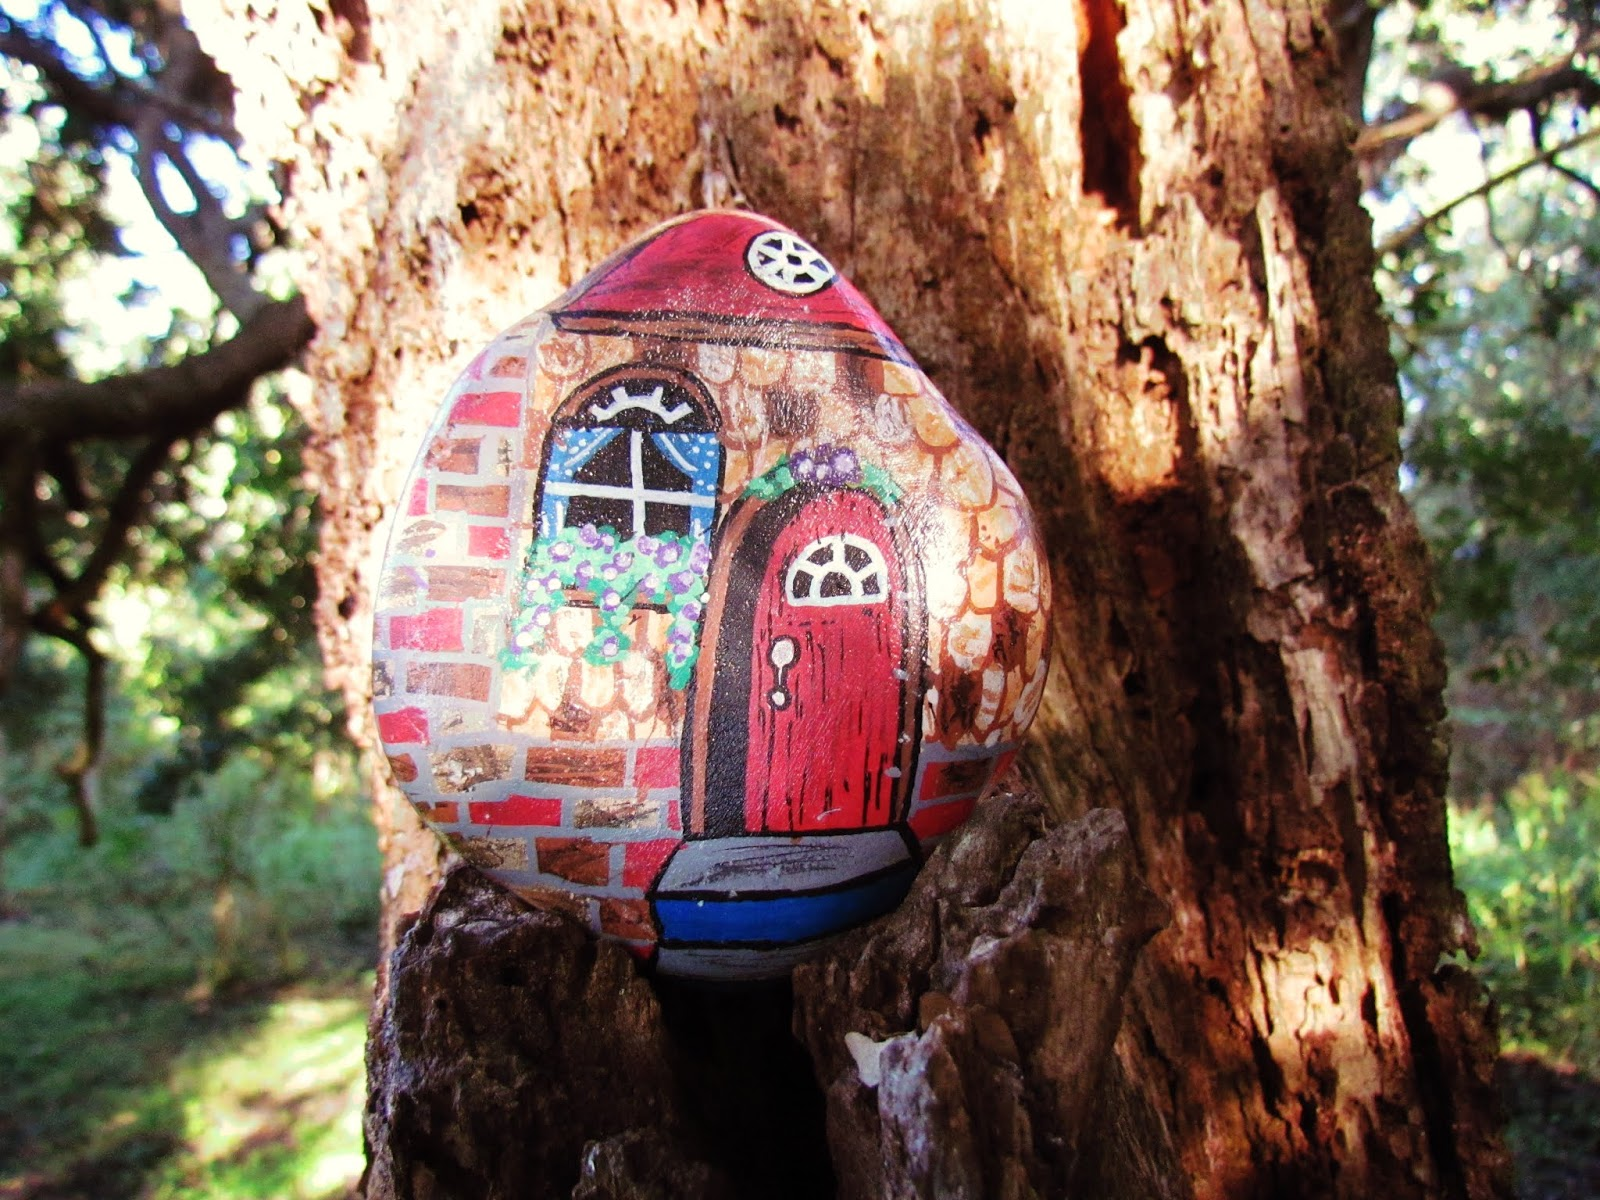 A painted rock by artist of a house cottage in the woods hoisted by a tree